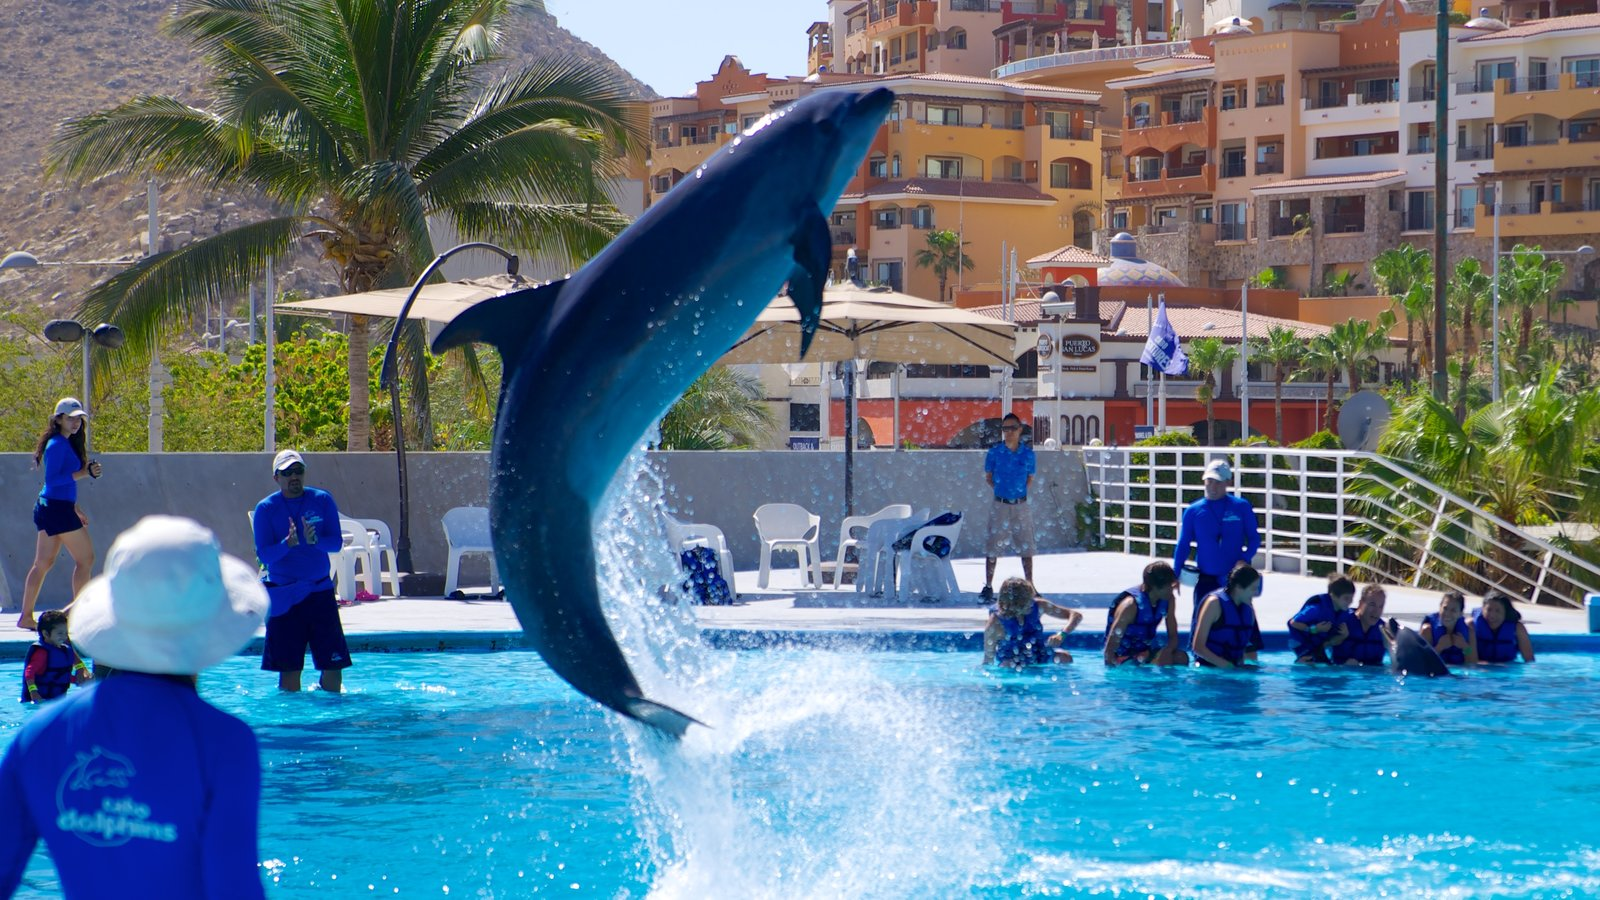 Cabo Dolphins showing marine life, performance art and whale watching